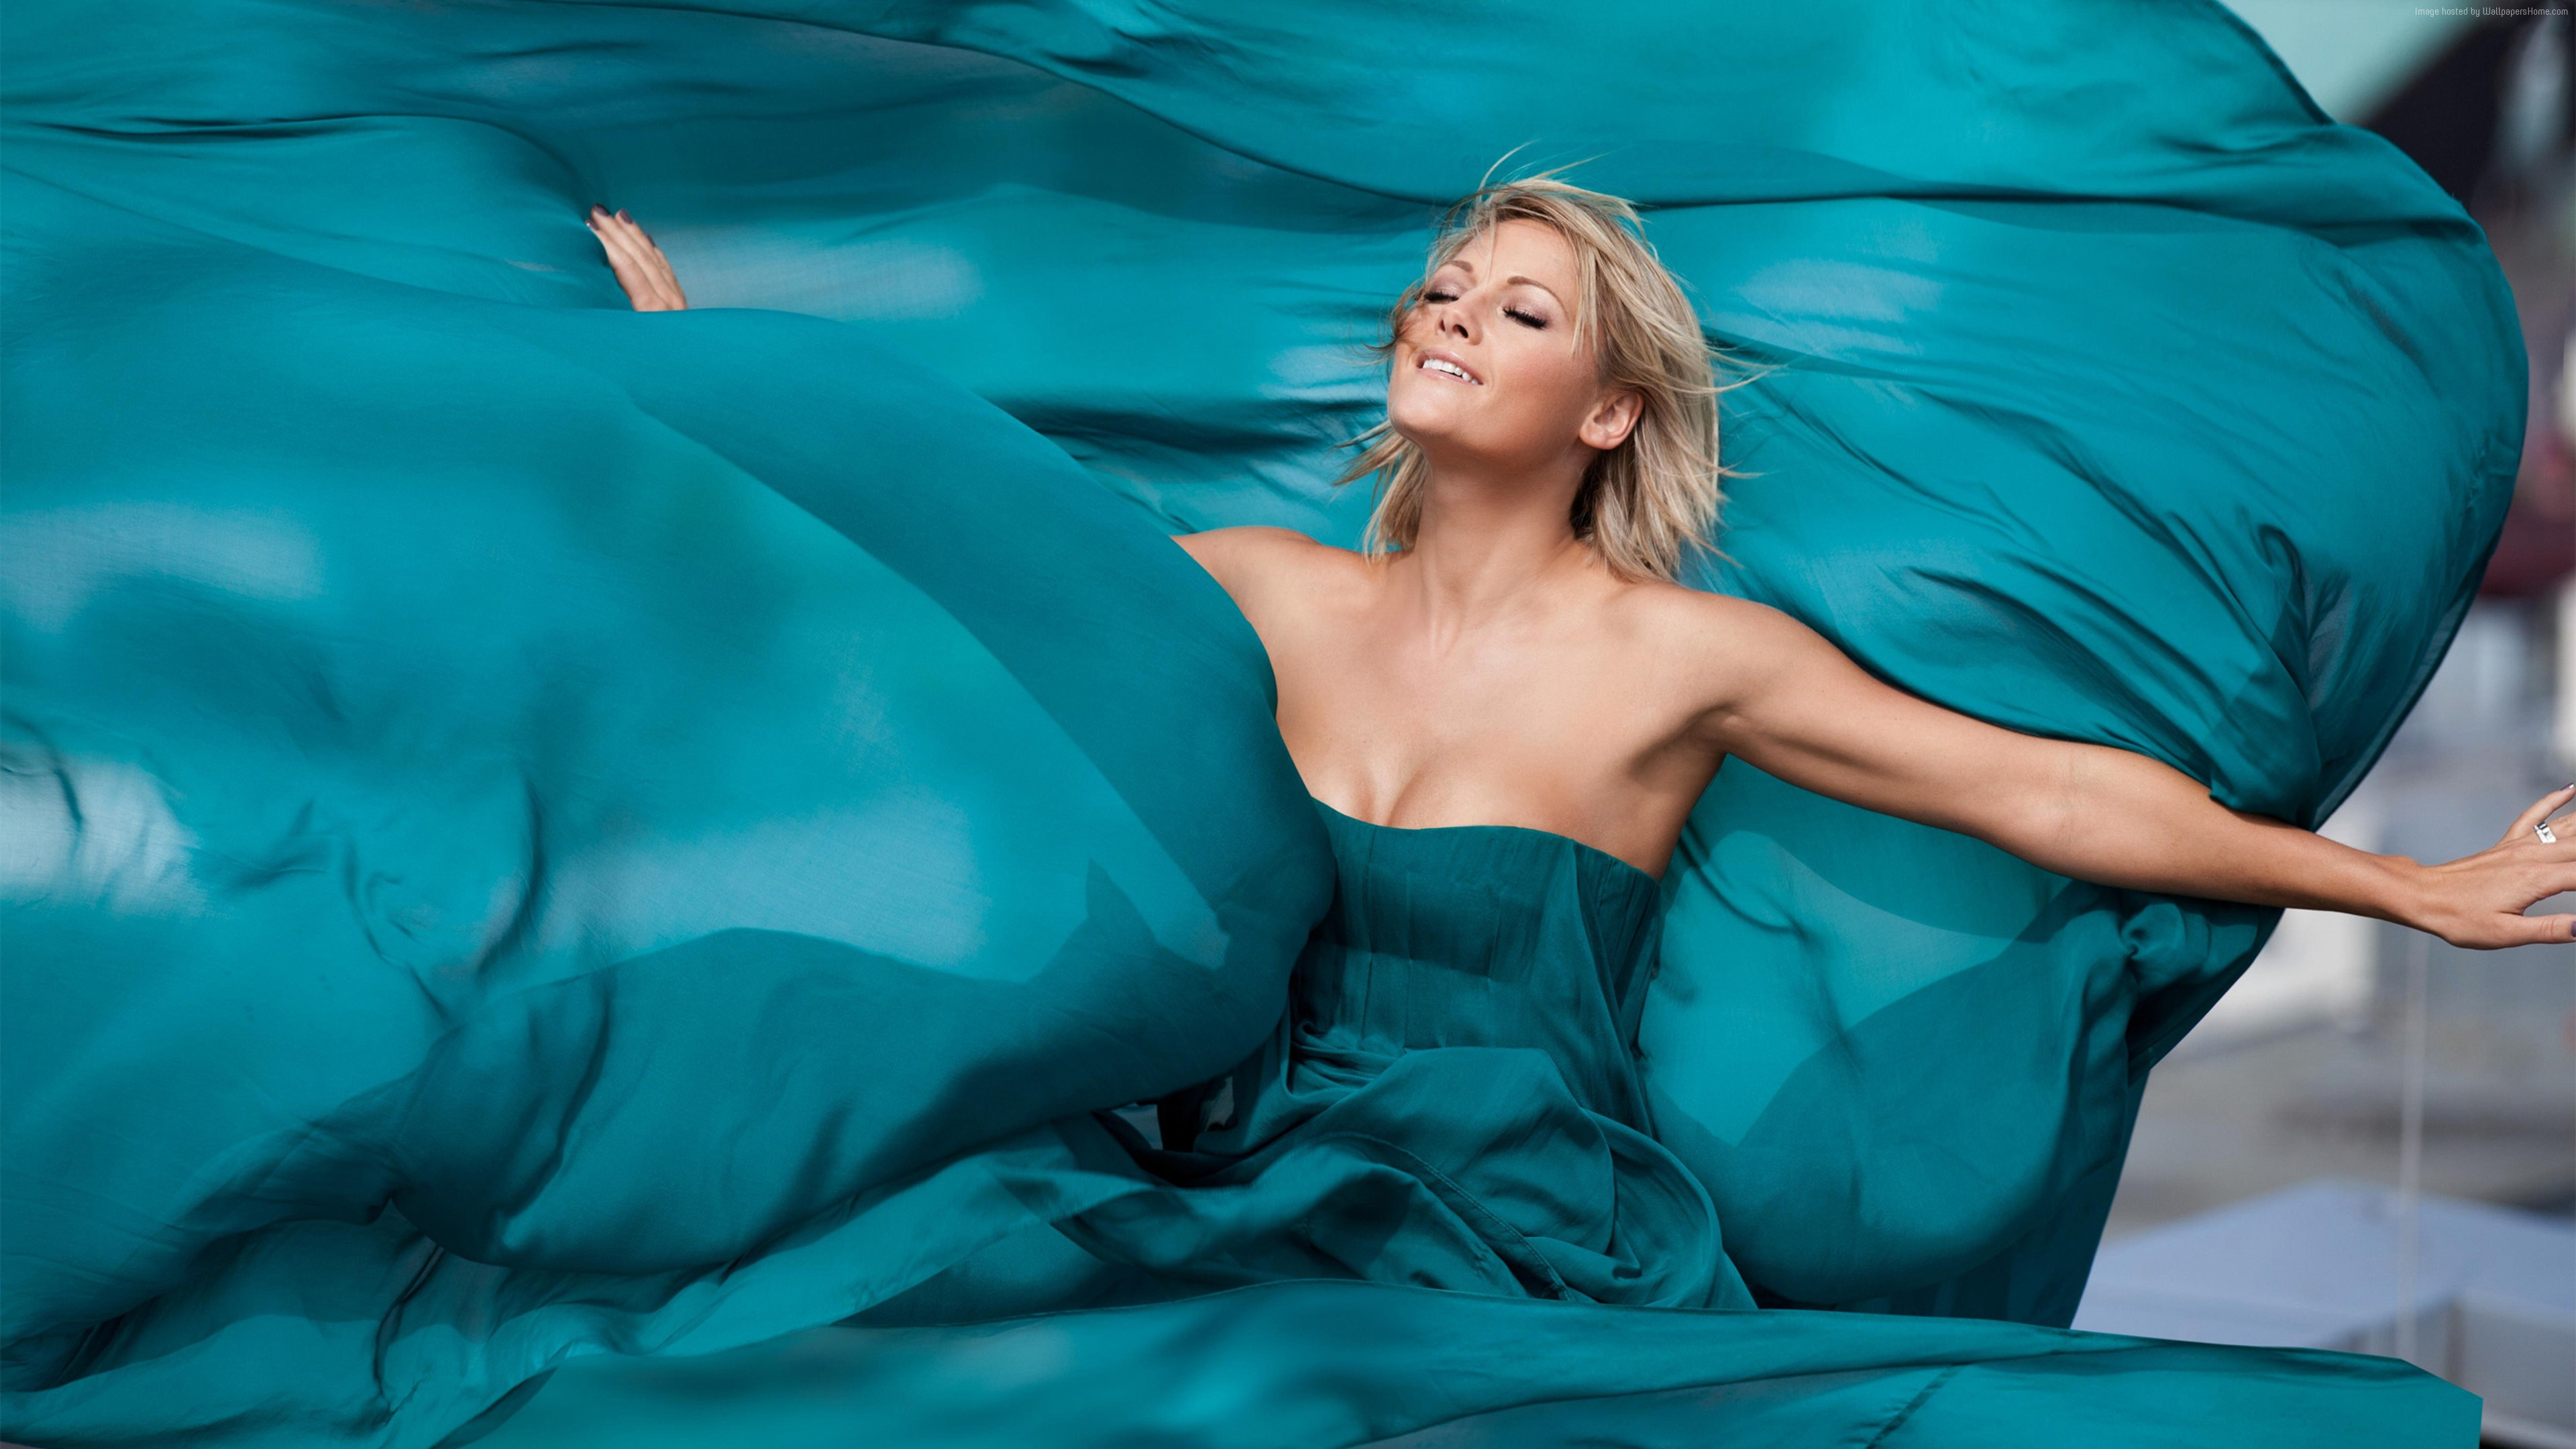 Wallpaper helene fischer most popular celebs in 2015 for Most famous house songs